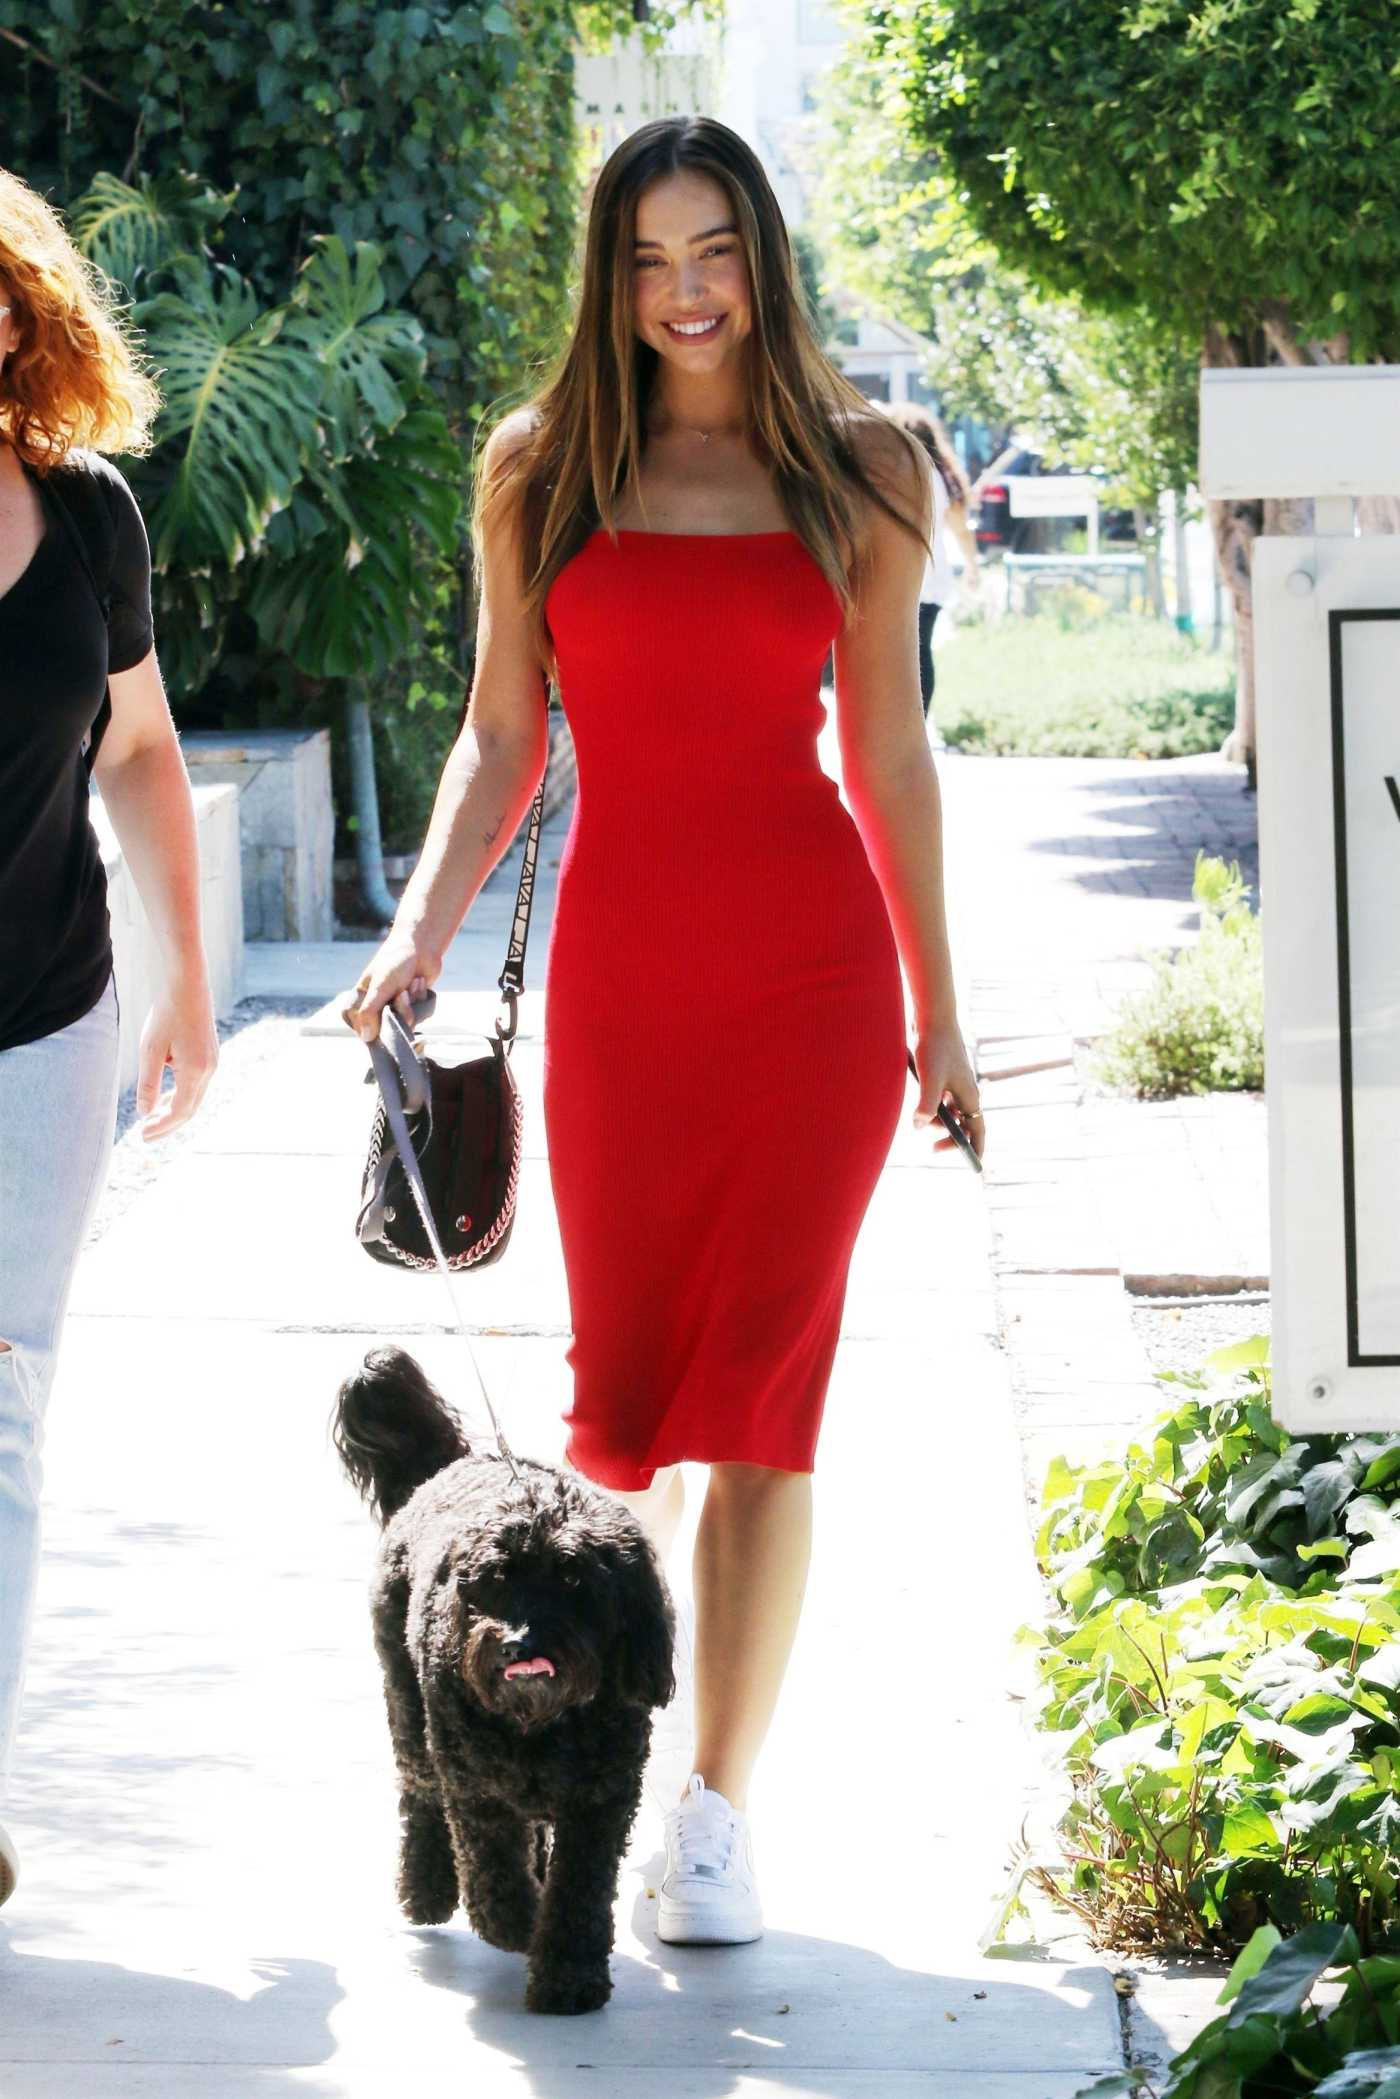 Alexis Ren in a Red Dress Walks Her Dog Out in West Hollywood 07/27/2019